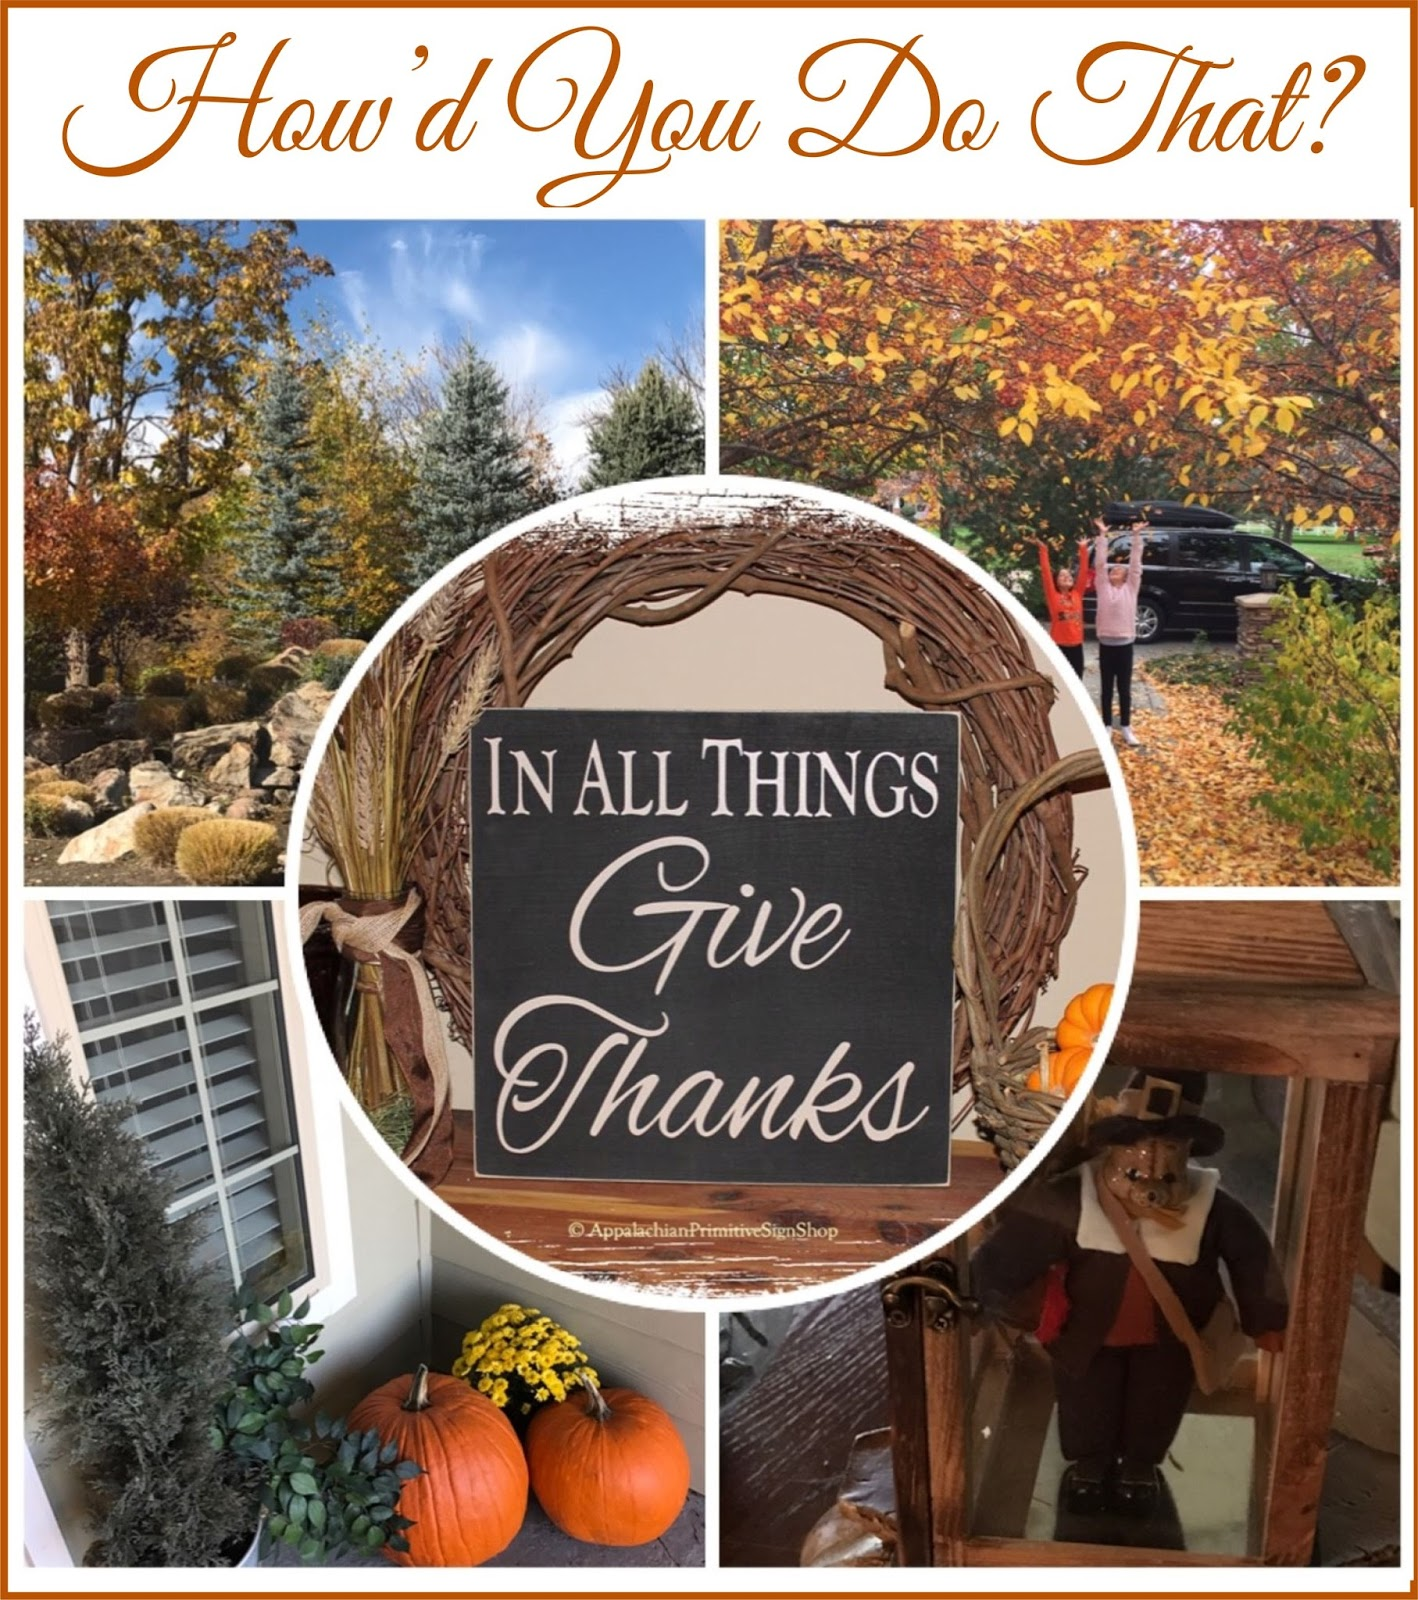 How'd You Do That?: HAPPY THANKSGIVING FROM OUR HOUSE TO